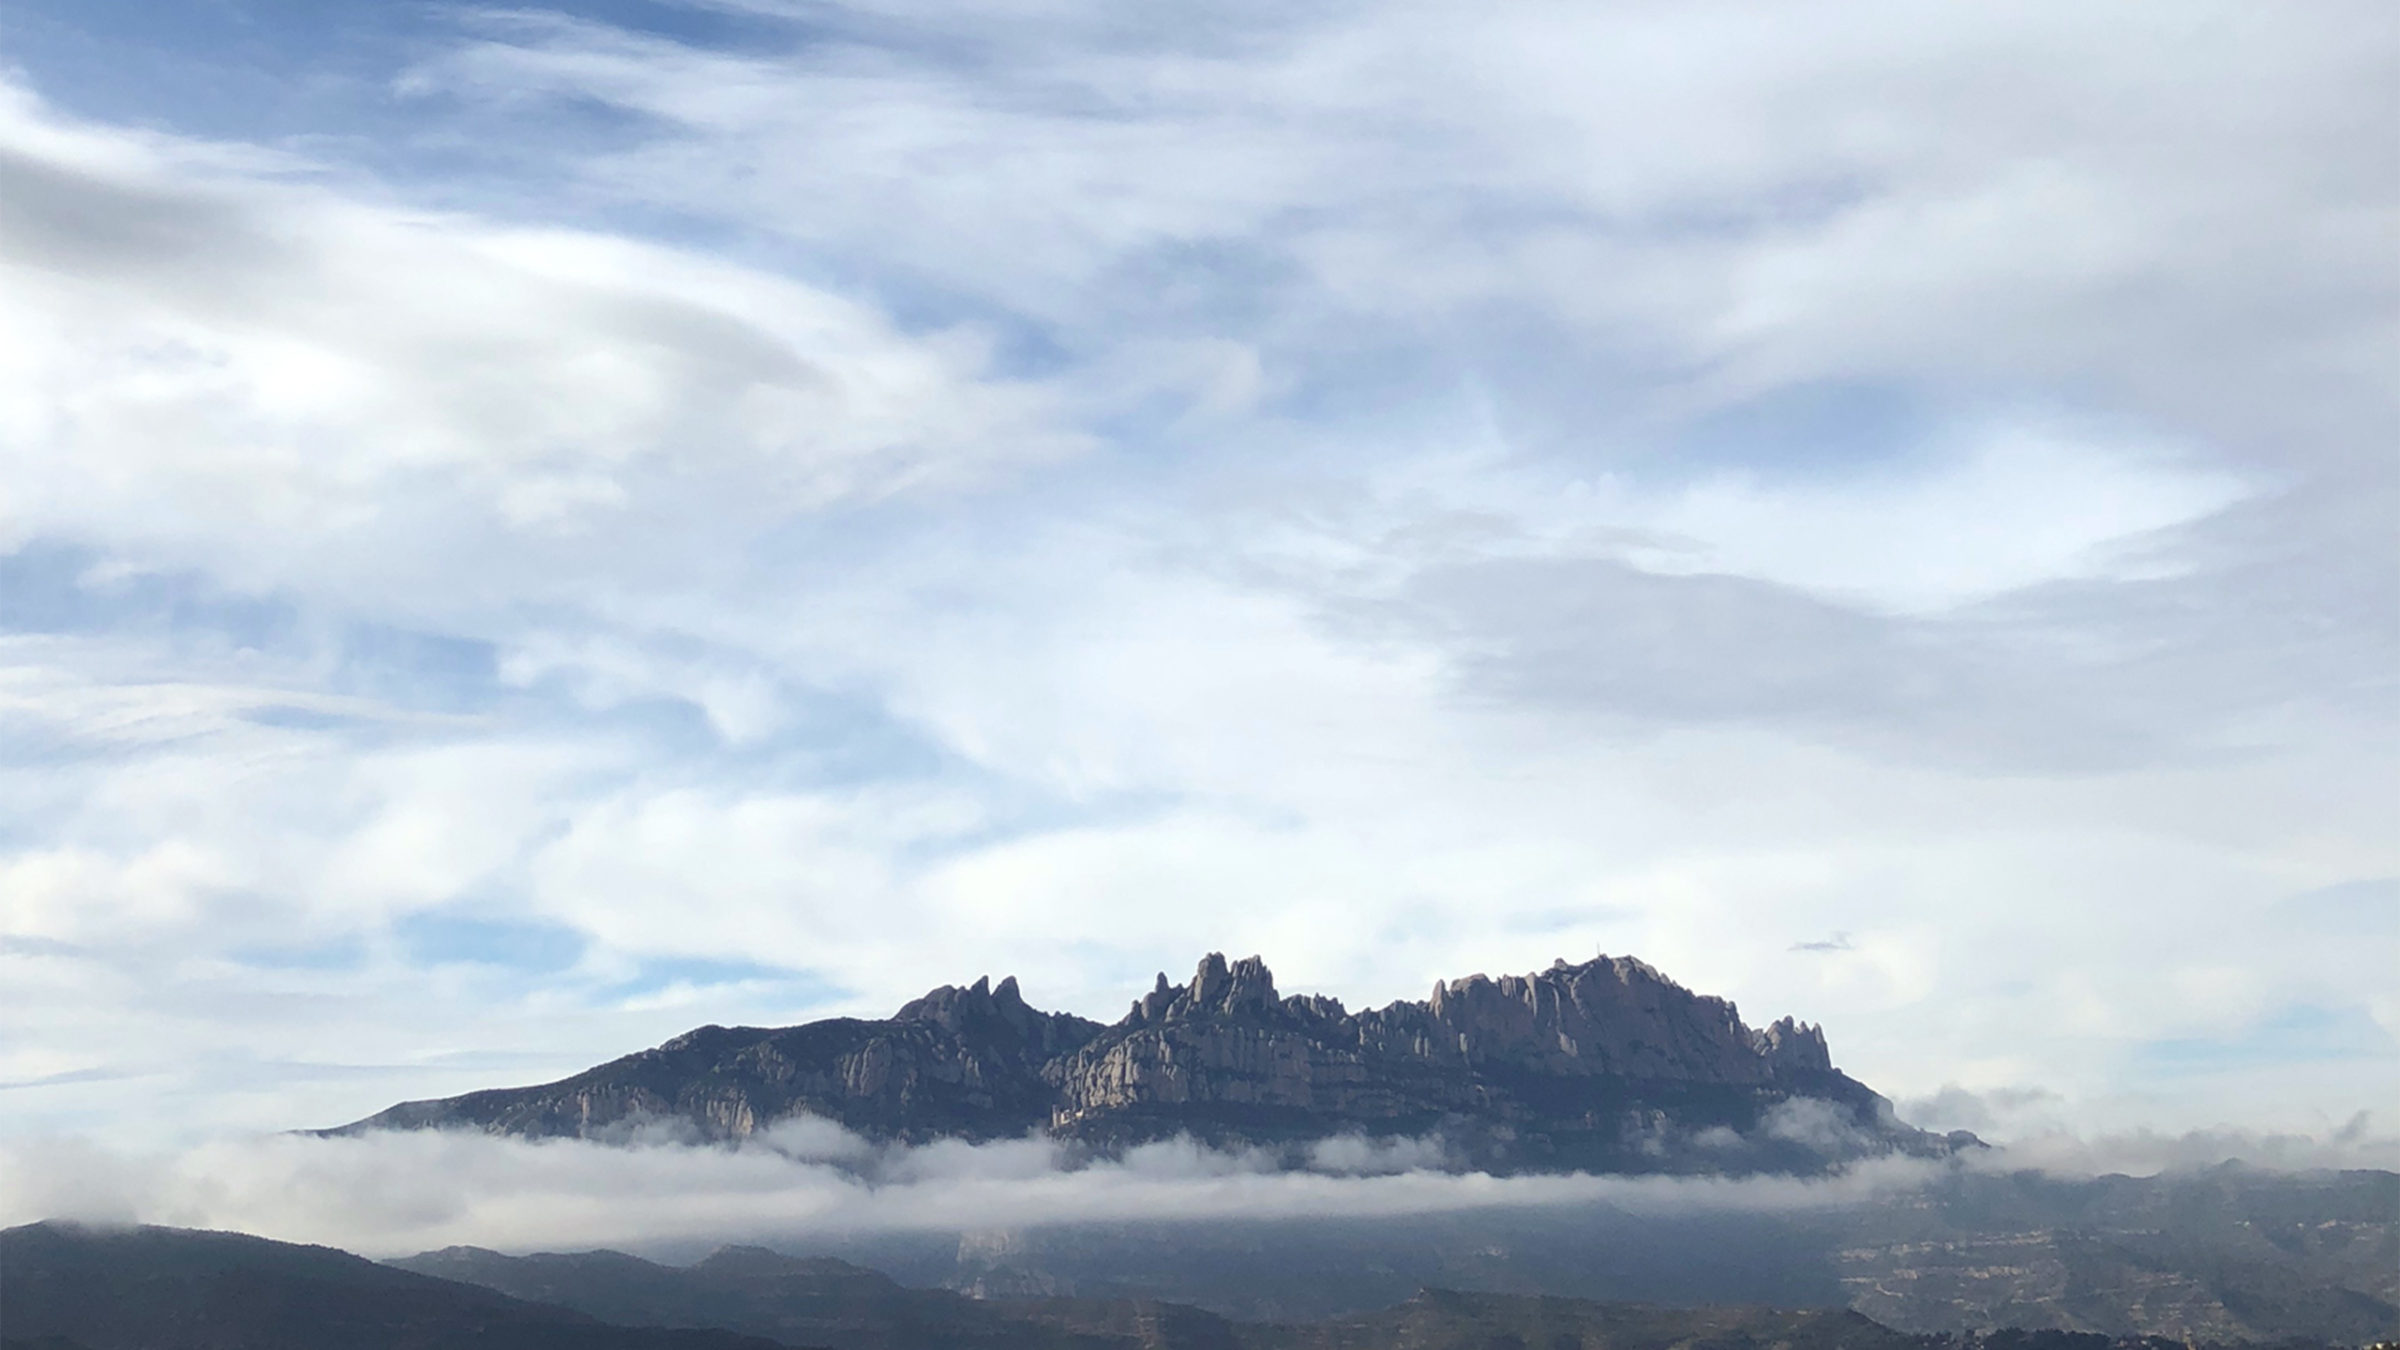 Montserrat mountain from Vacarisses by Laura Moreno